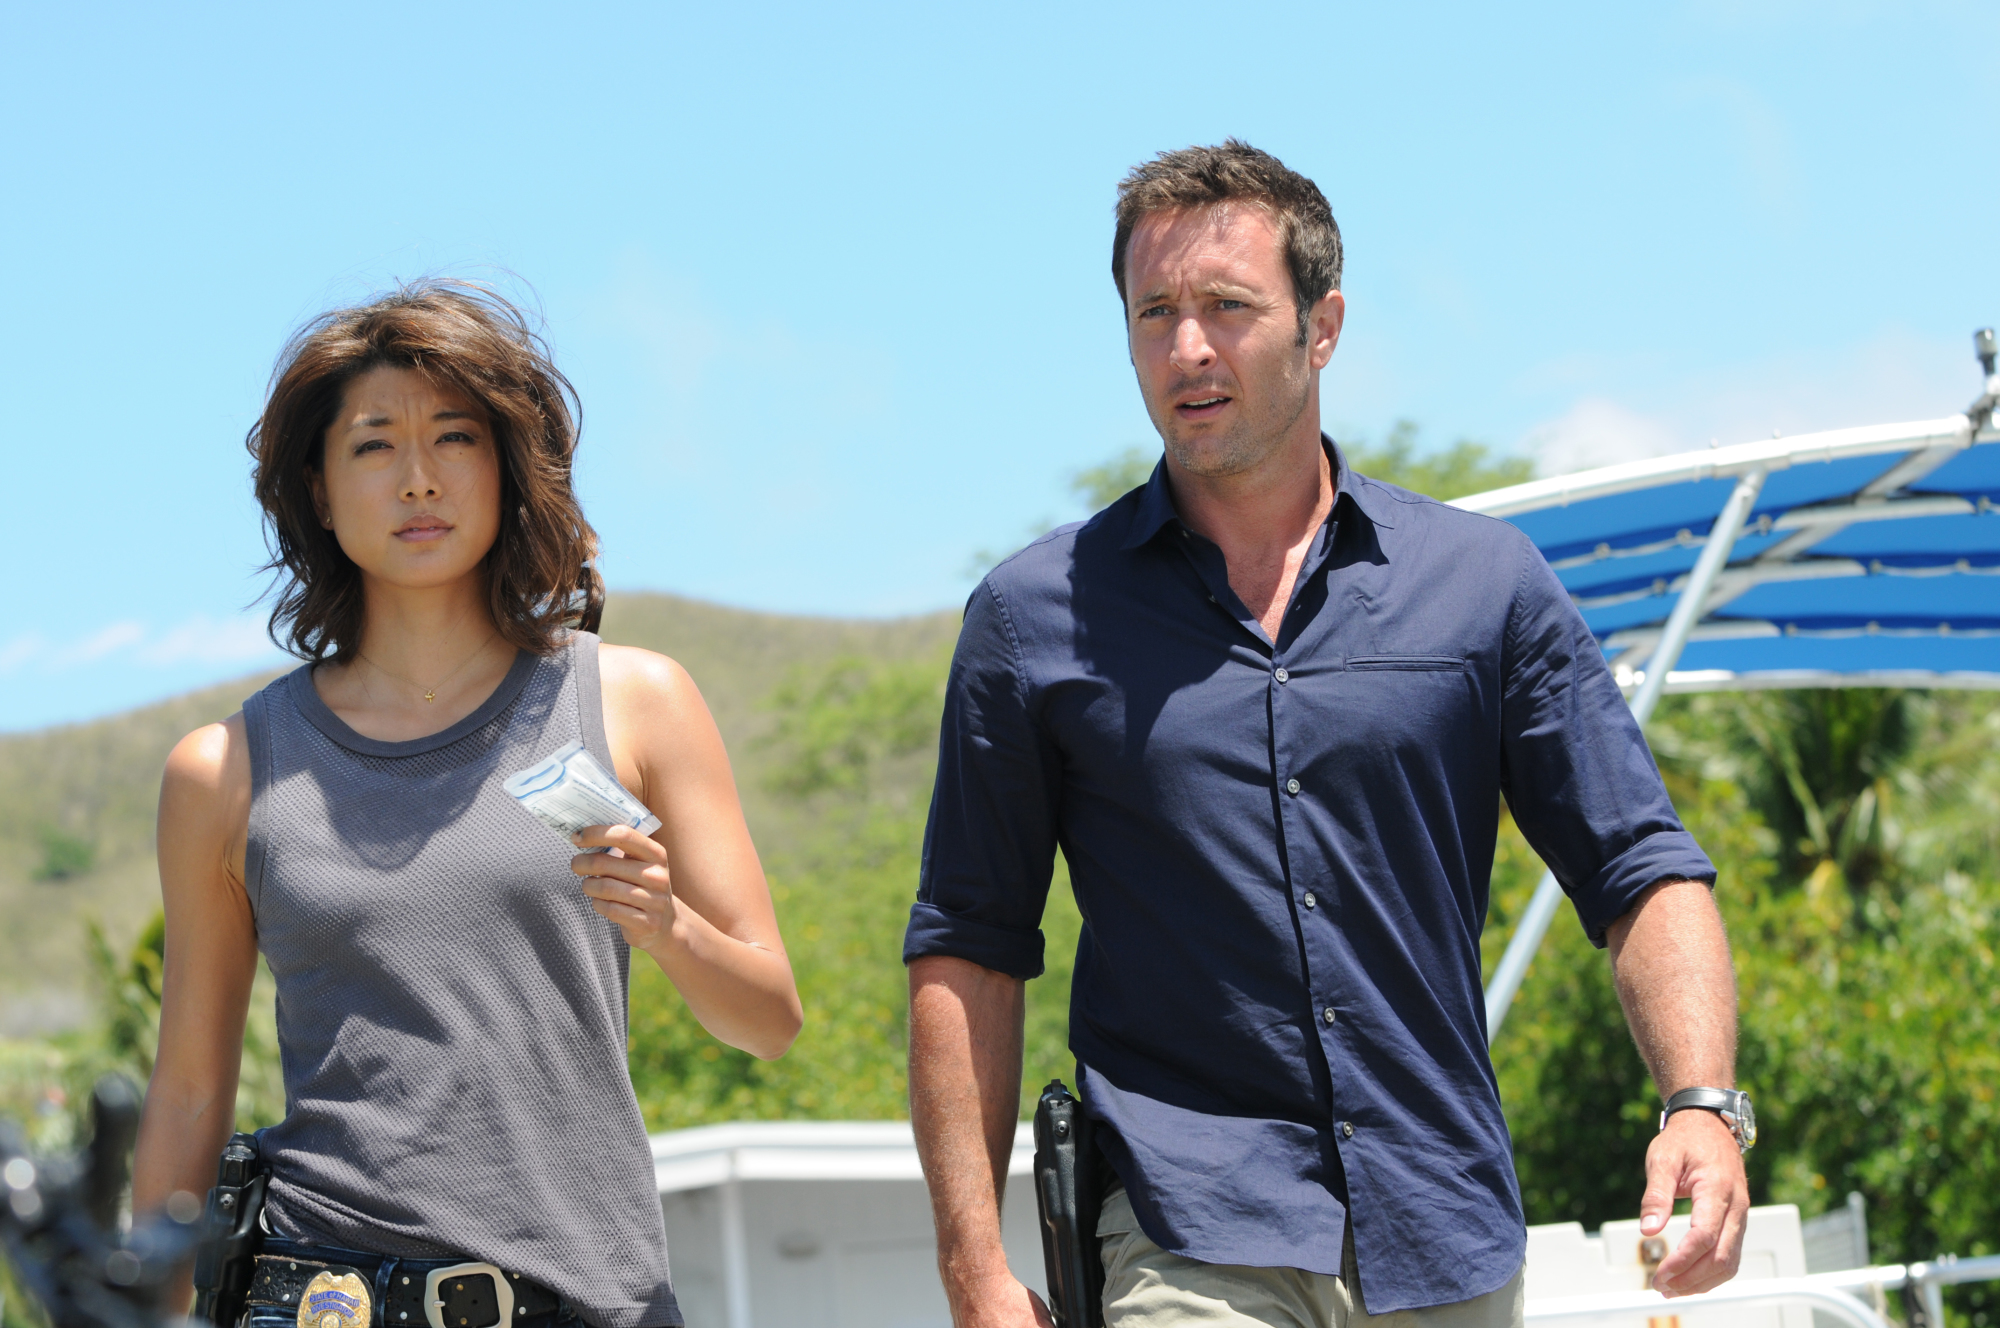 Grace Park as Kono Kalakaua and Alex O'Loughlin as Steve McGarrett